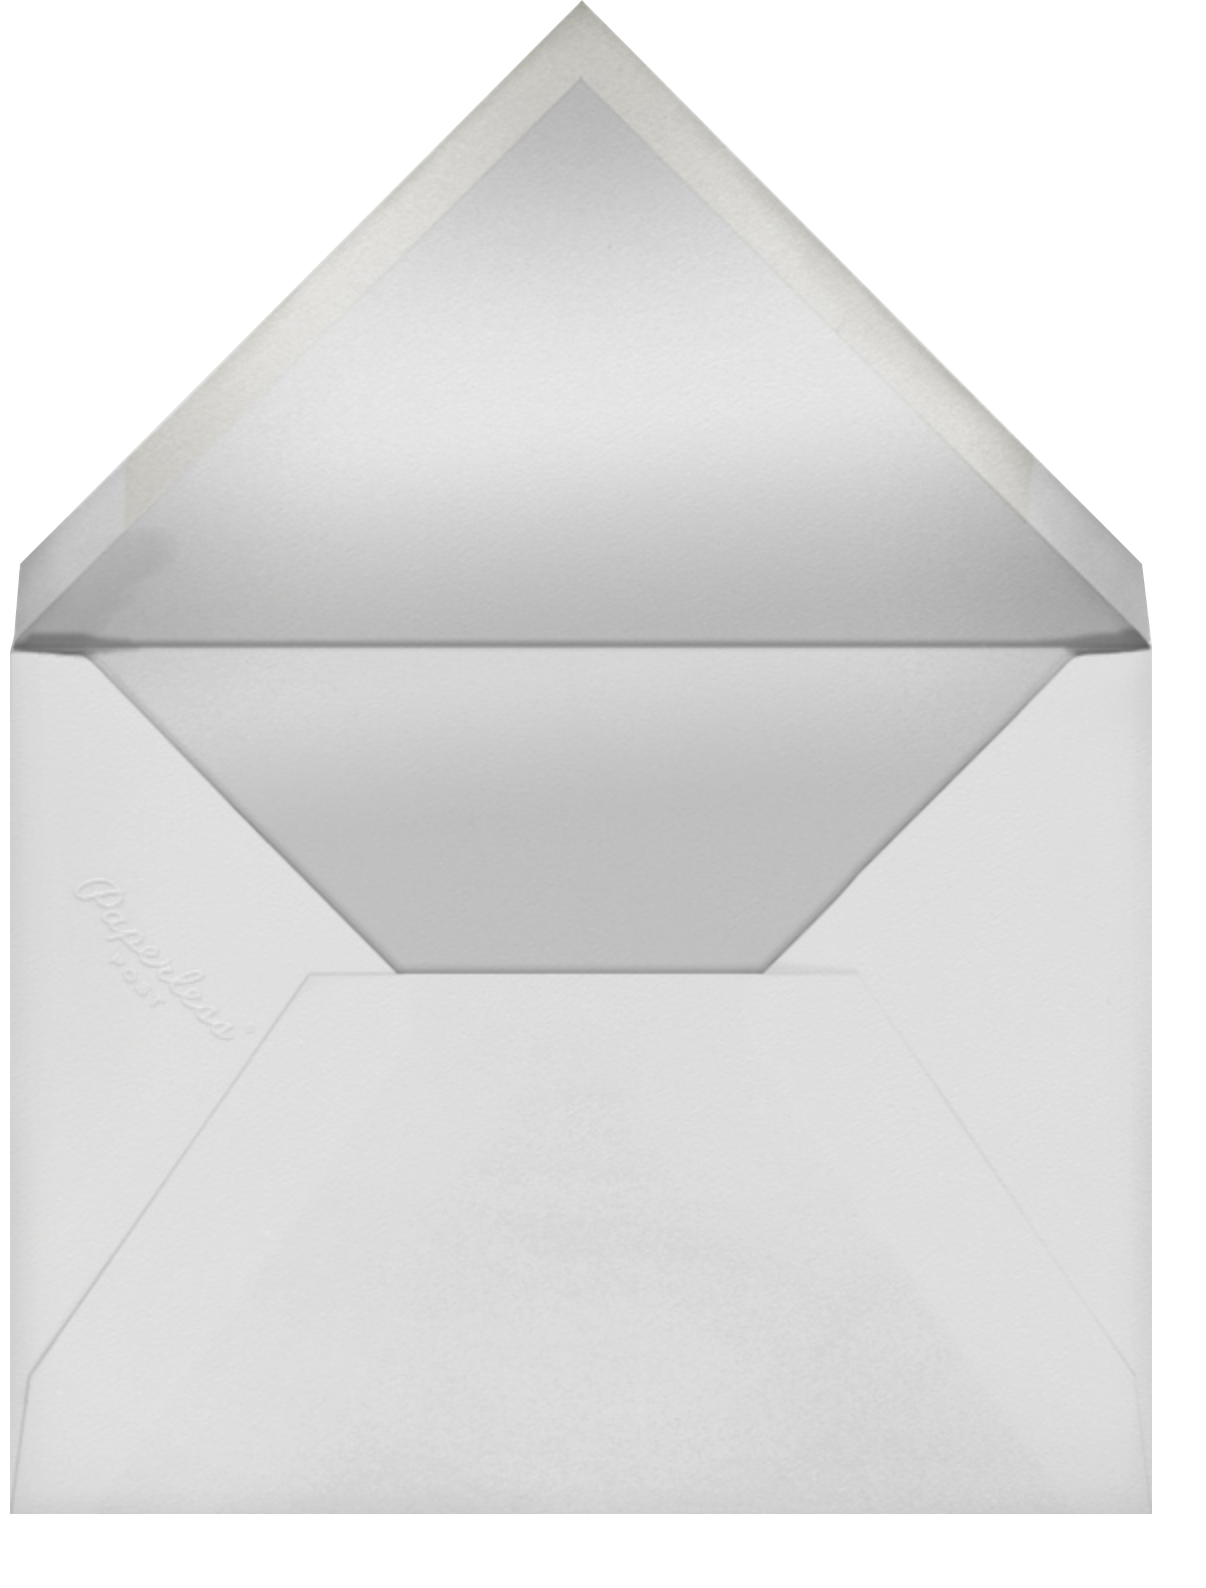 Split Triangle - Cyan - Paperless Post - Hanukkah - envelope back